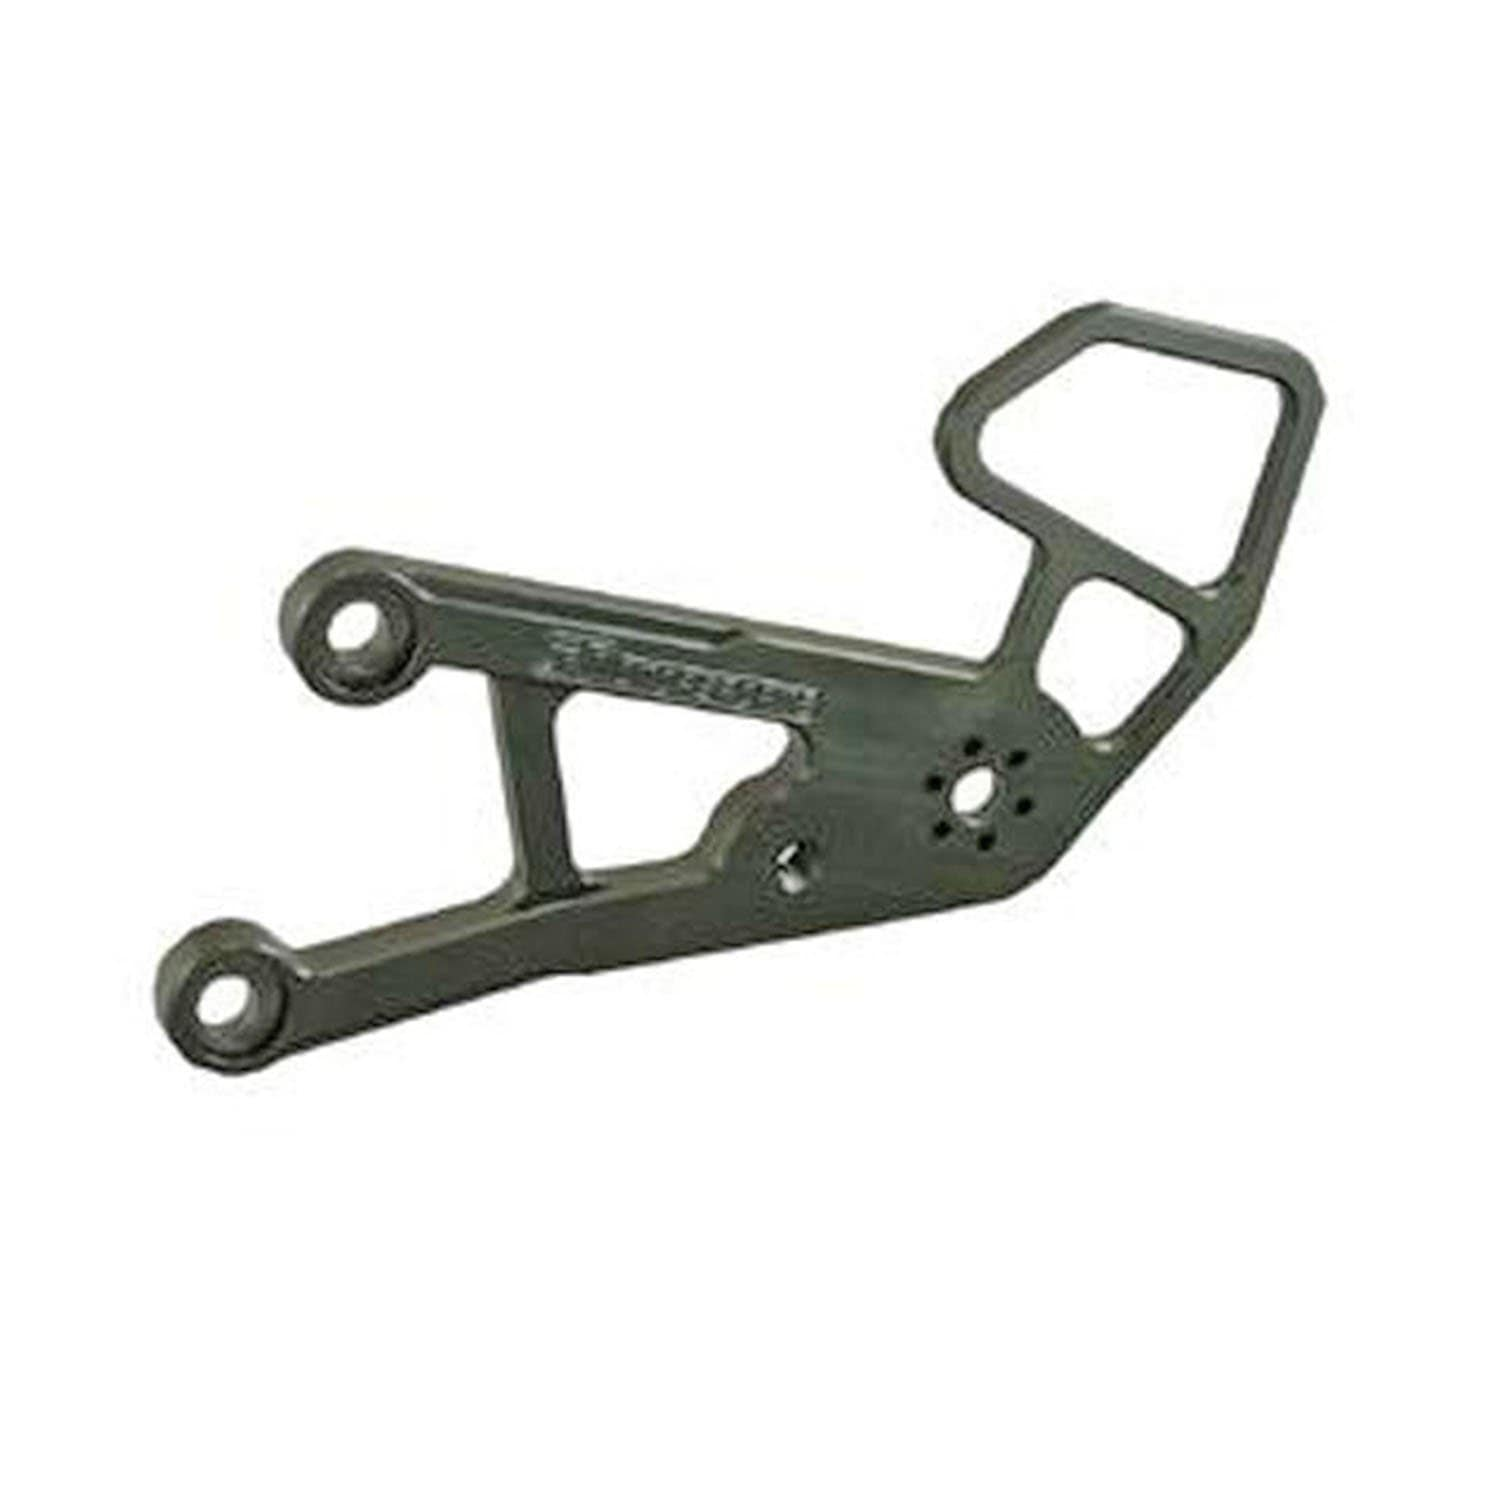 05-0147L Kaw ZX6/636 '07-08 Bracket LHS, Black - Woodcraft Technologies - Motorcycle Parts